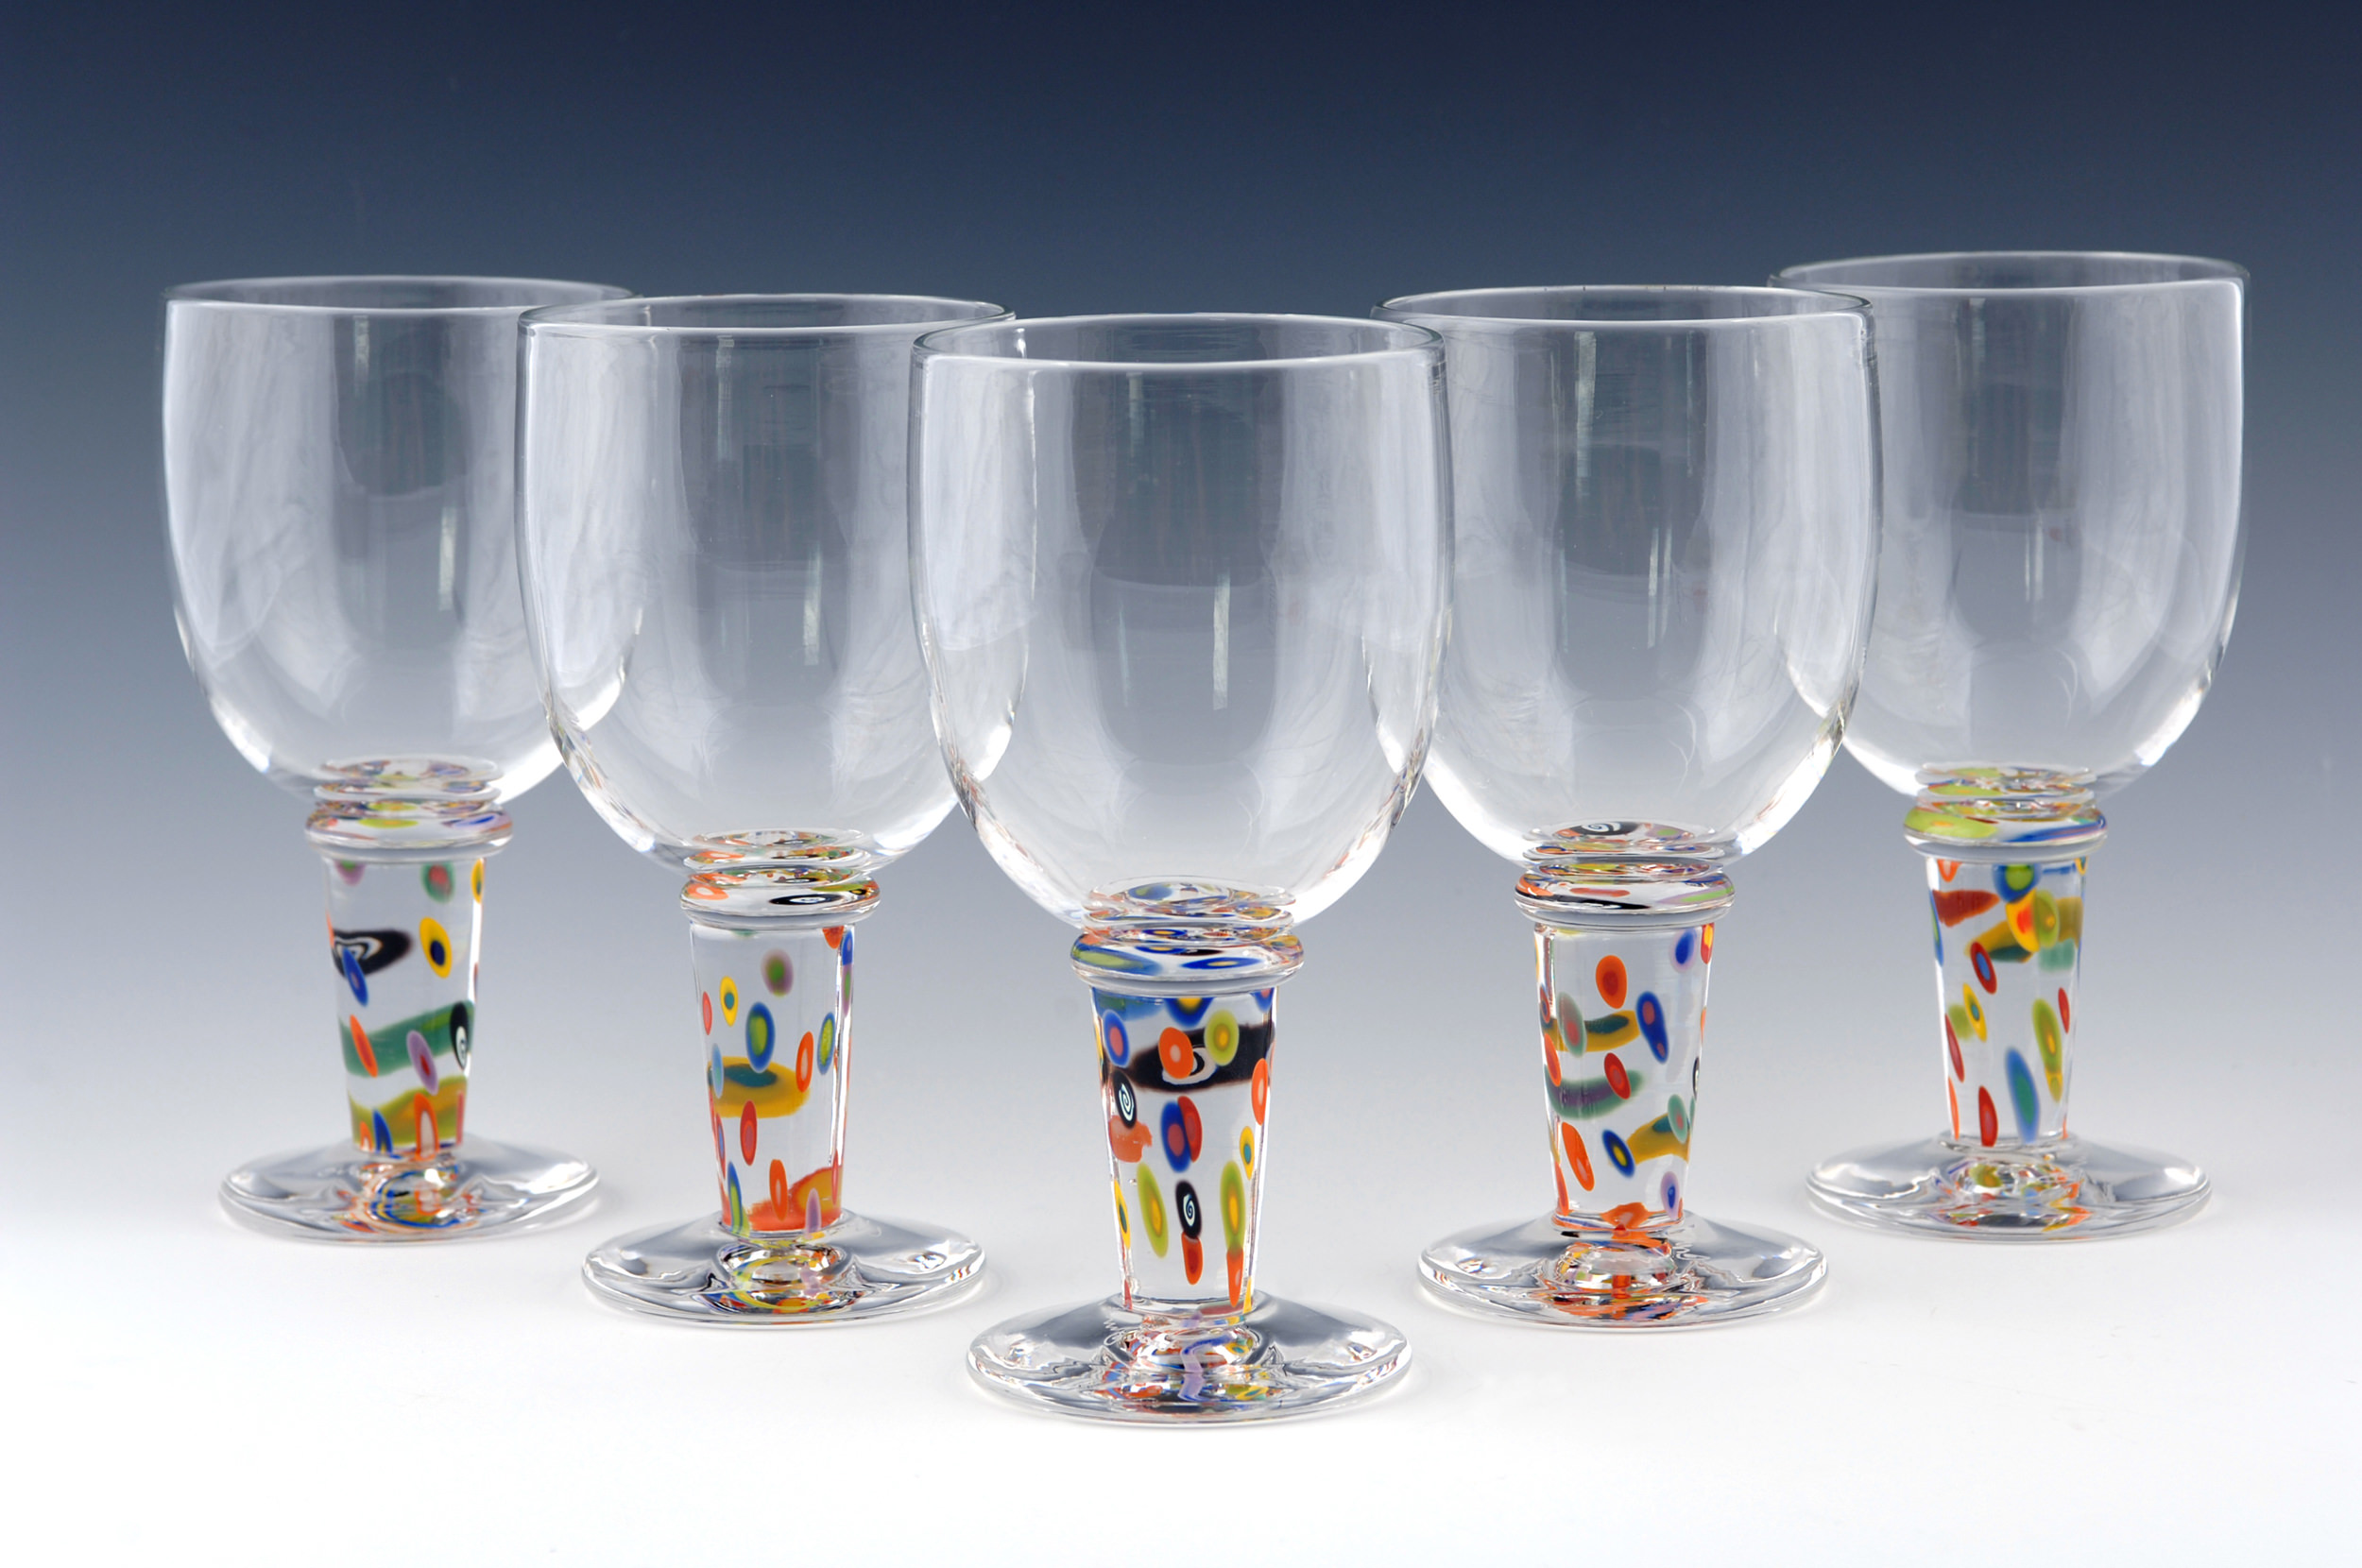 Wine Glasses seen here with the Superfruit Pattern on the stem.